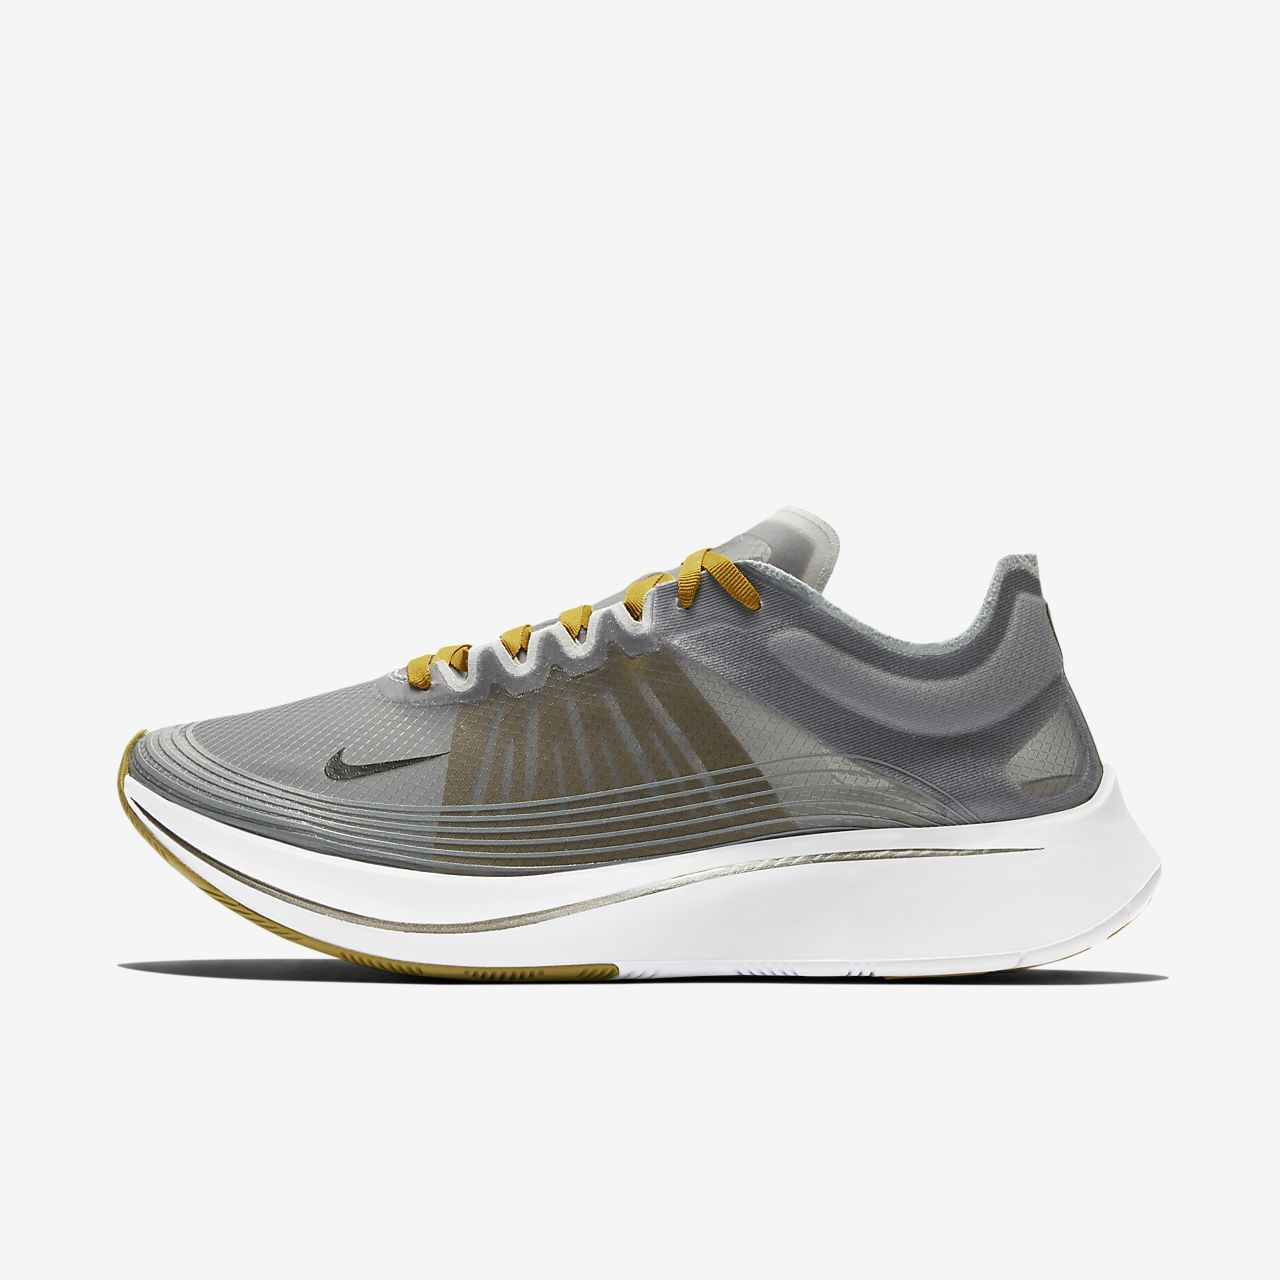 4f7e6400150 Nike Zoom Fly SP Running Shoe. Nike.com